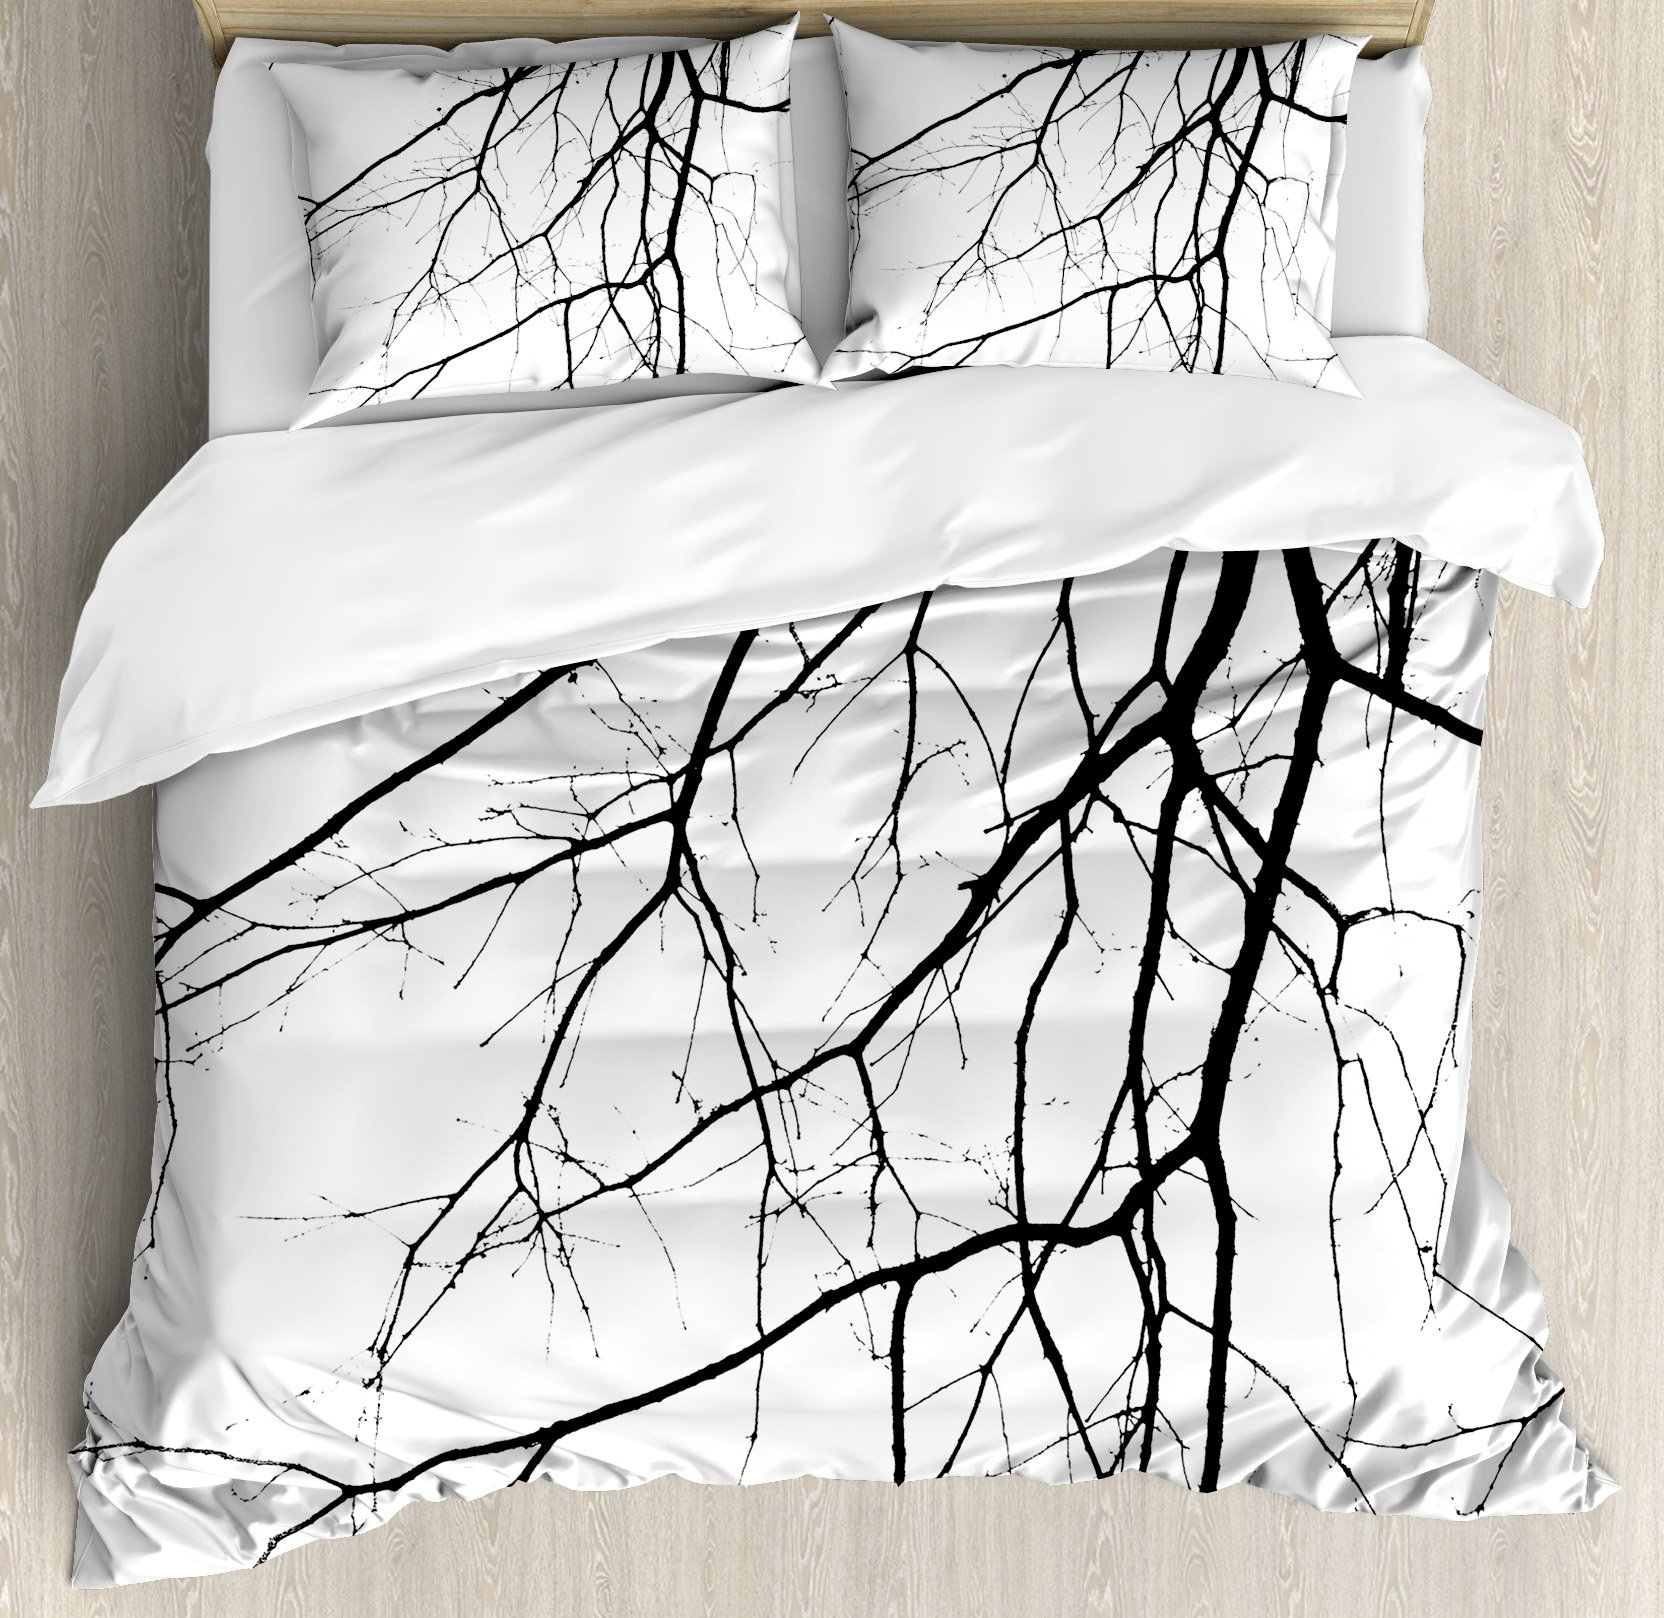 Ambesonne Black and White Duvet Cover Set King Size, Macro Leafless Winter Tree Branches Idyllic Twigs of Oak Nature Print, Decorative 3 Piece Bedding Set with 2 Pillow Shams, Black and White